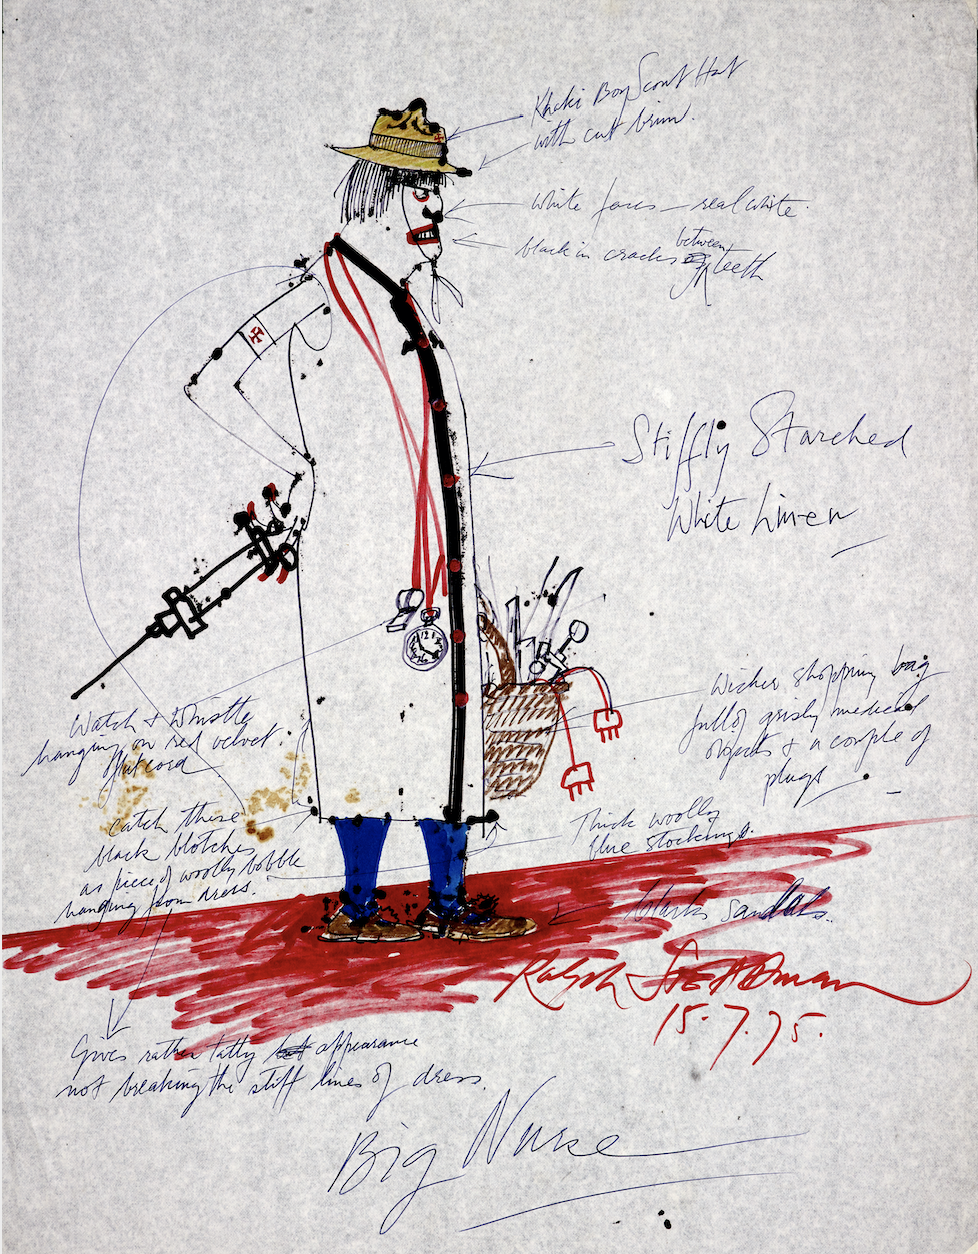 Nurse Costume, One Flew Over the Cuckoo's Nest, 1975 by Ralph Steadman